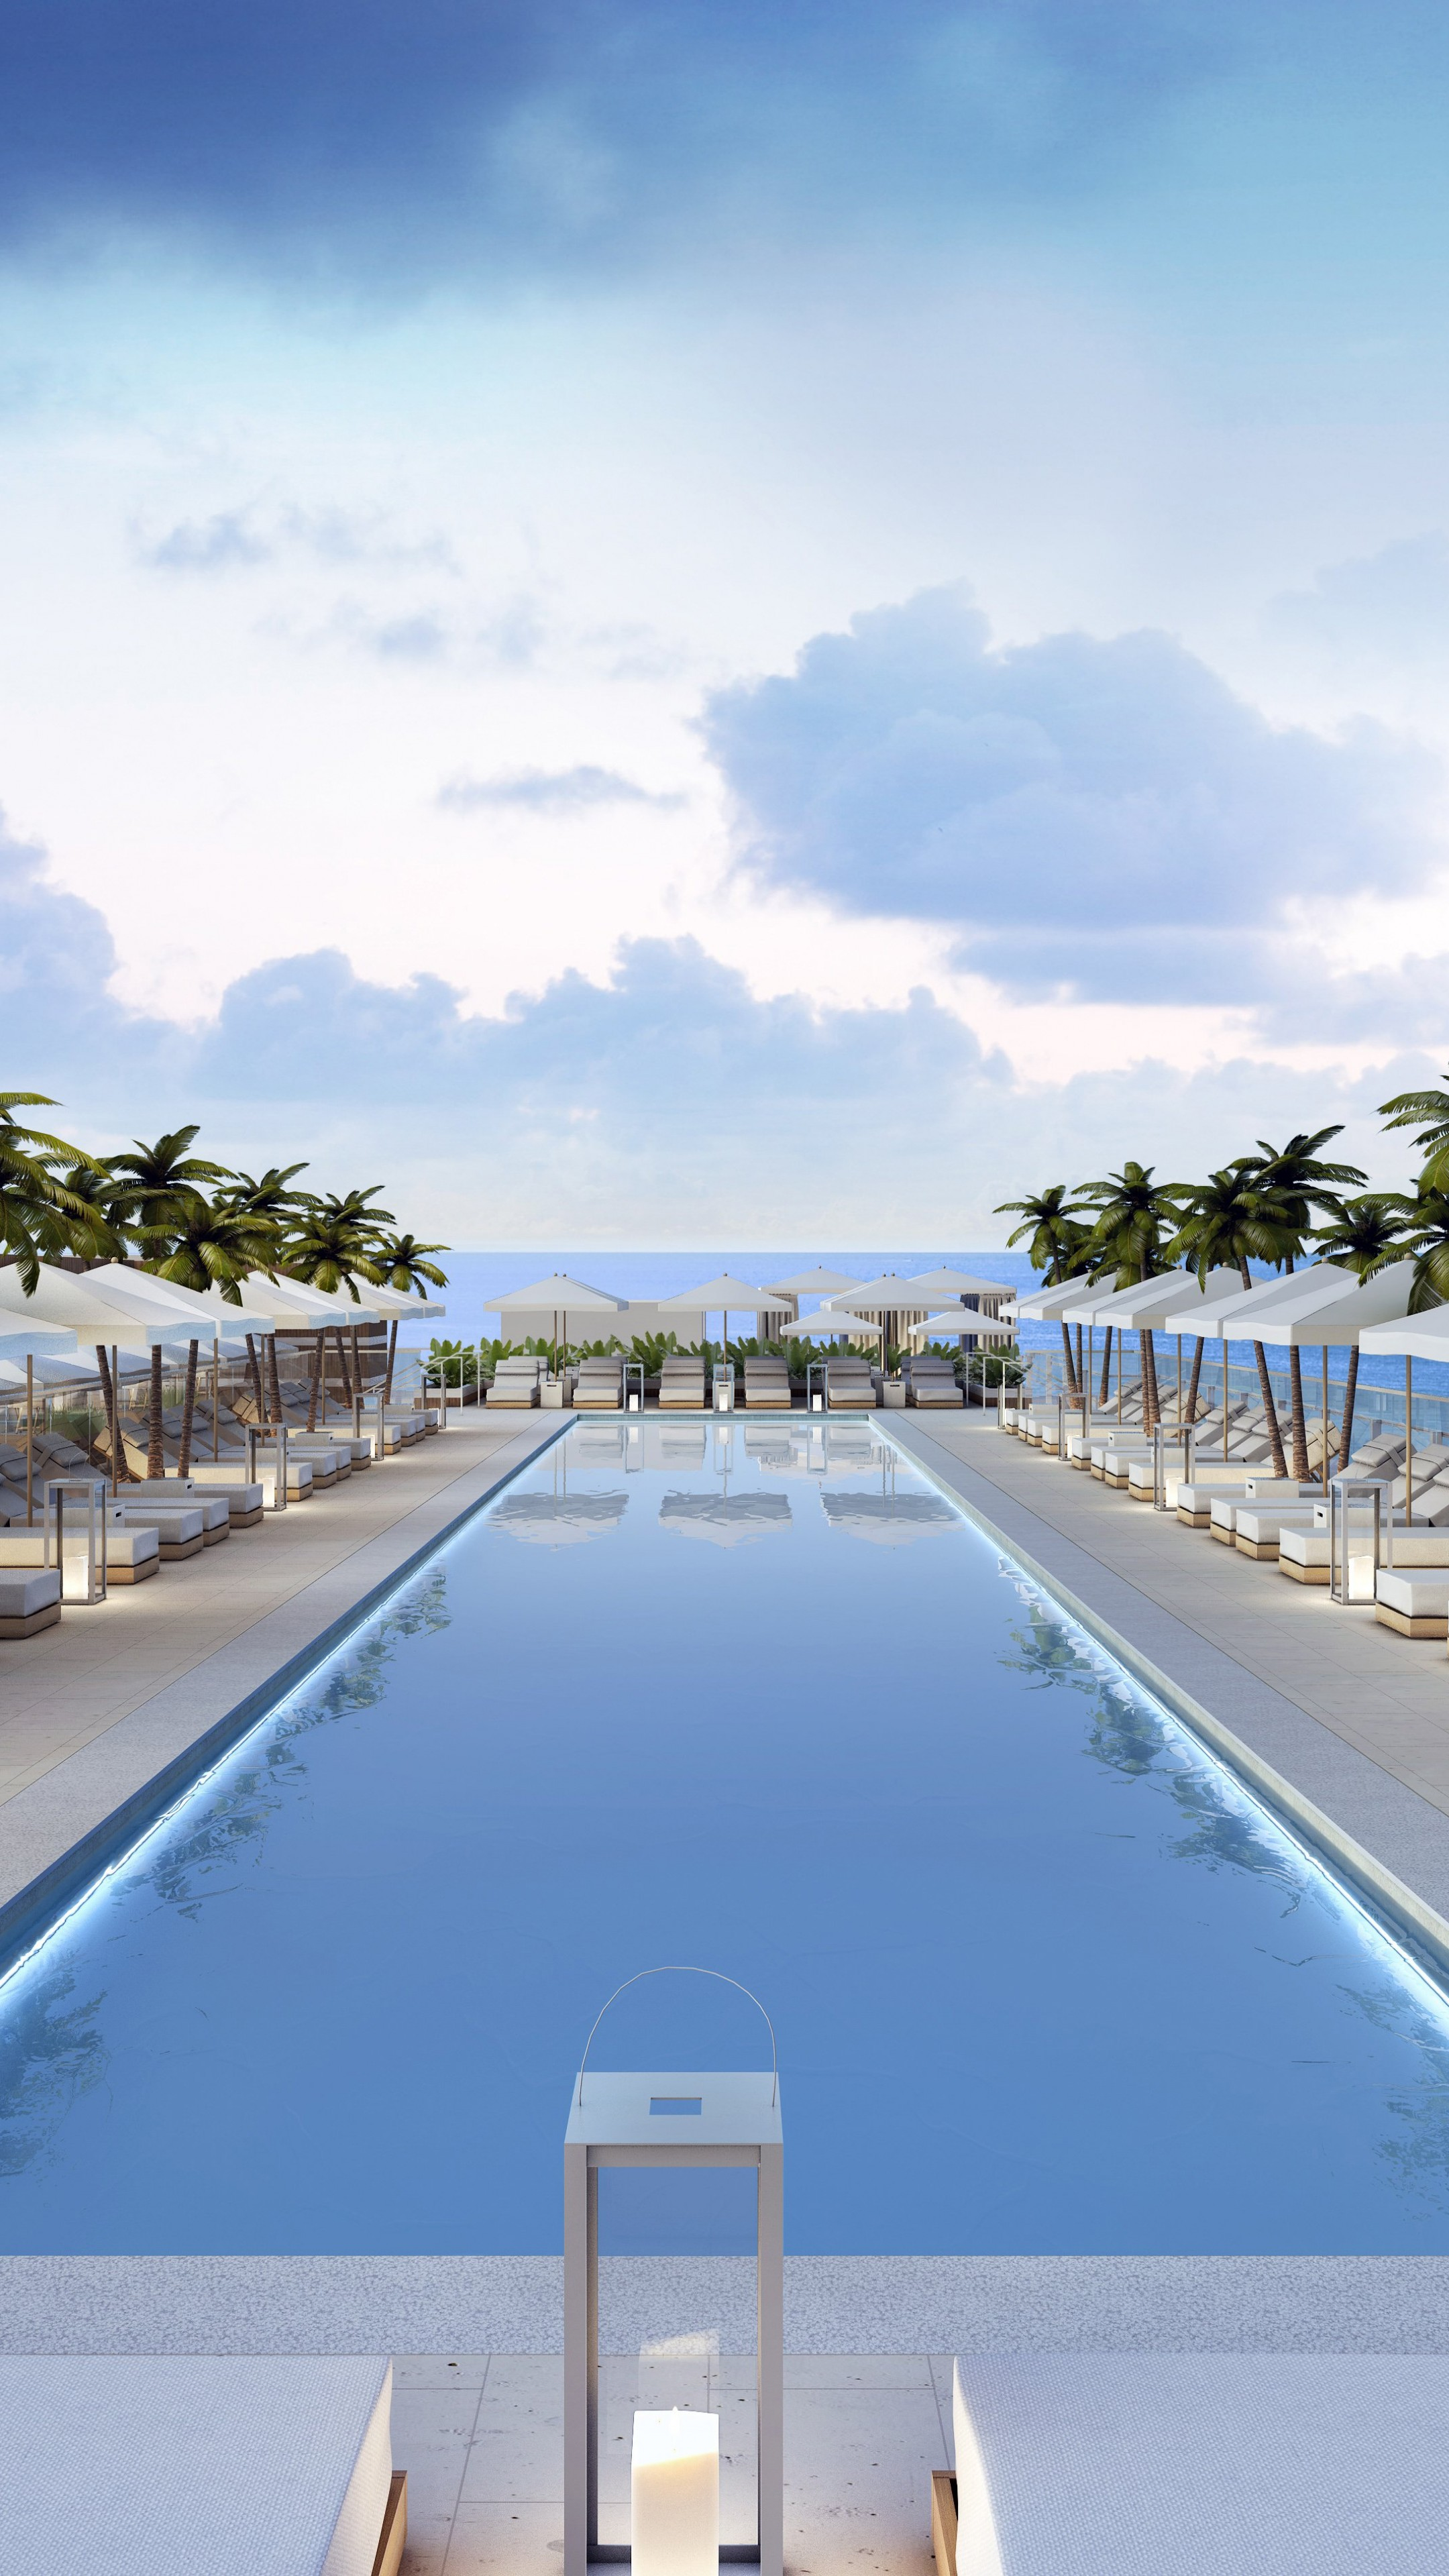 Swimming Wallpaper Quotes Wallpaper Miami South Beach Hotel Pool Sunbed Water